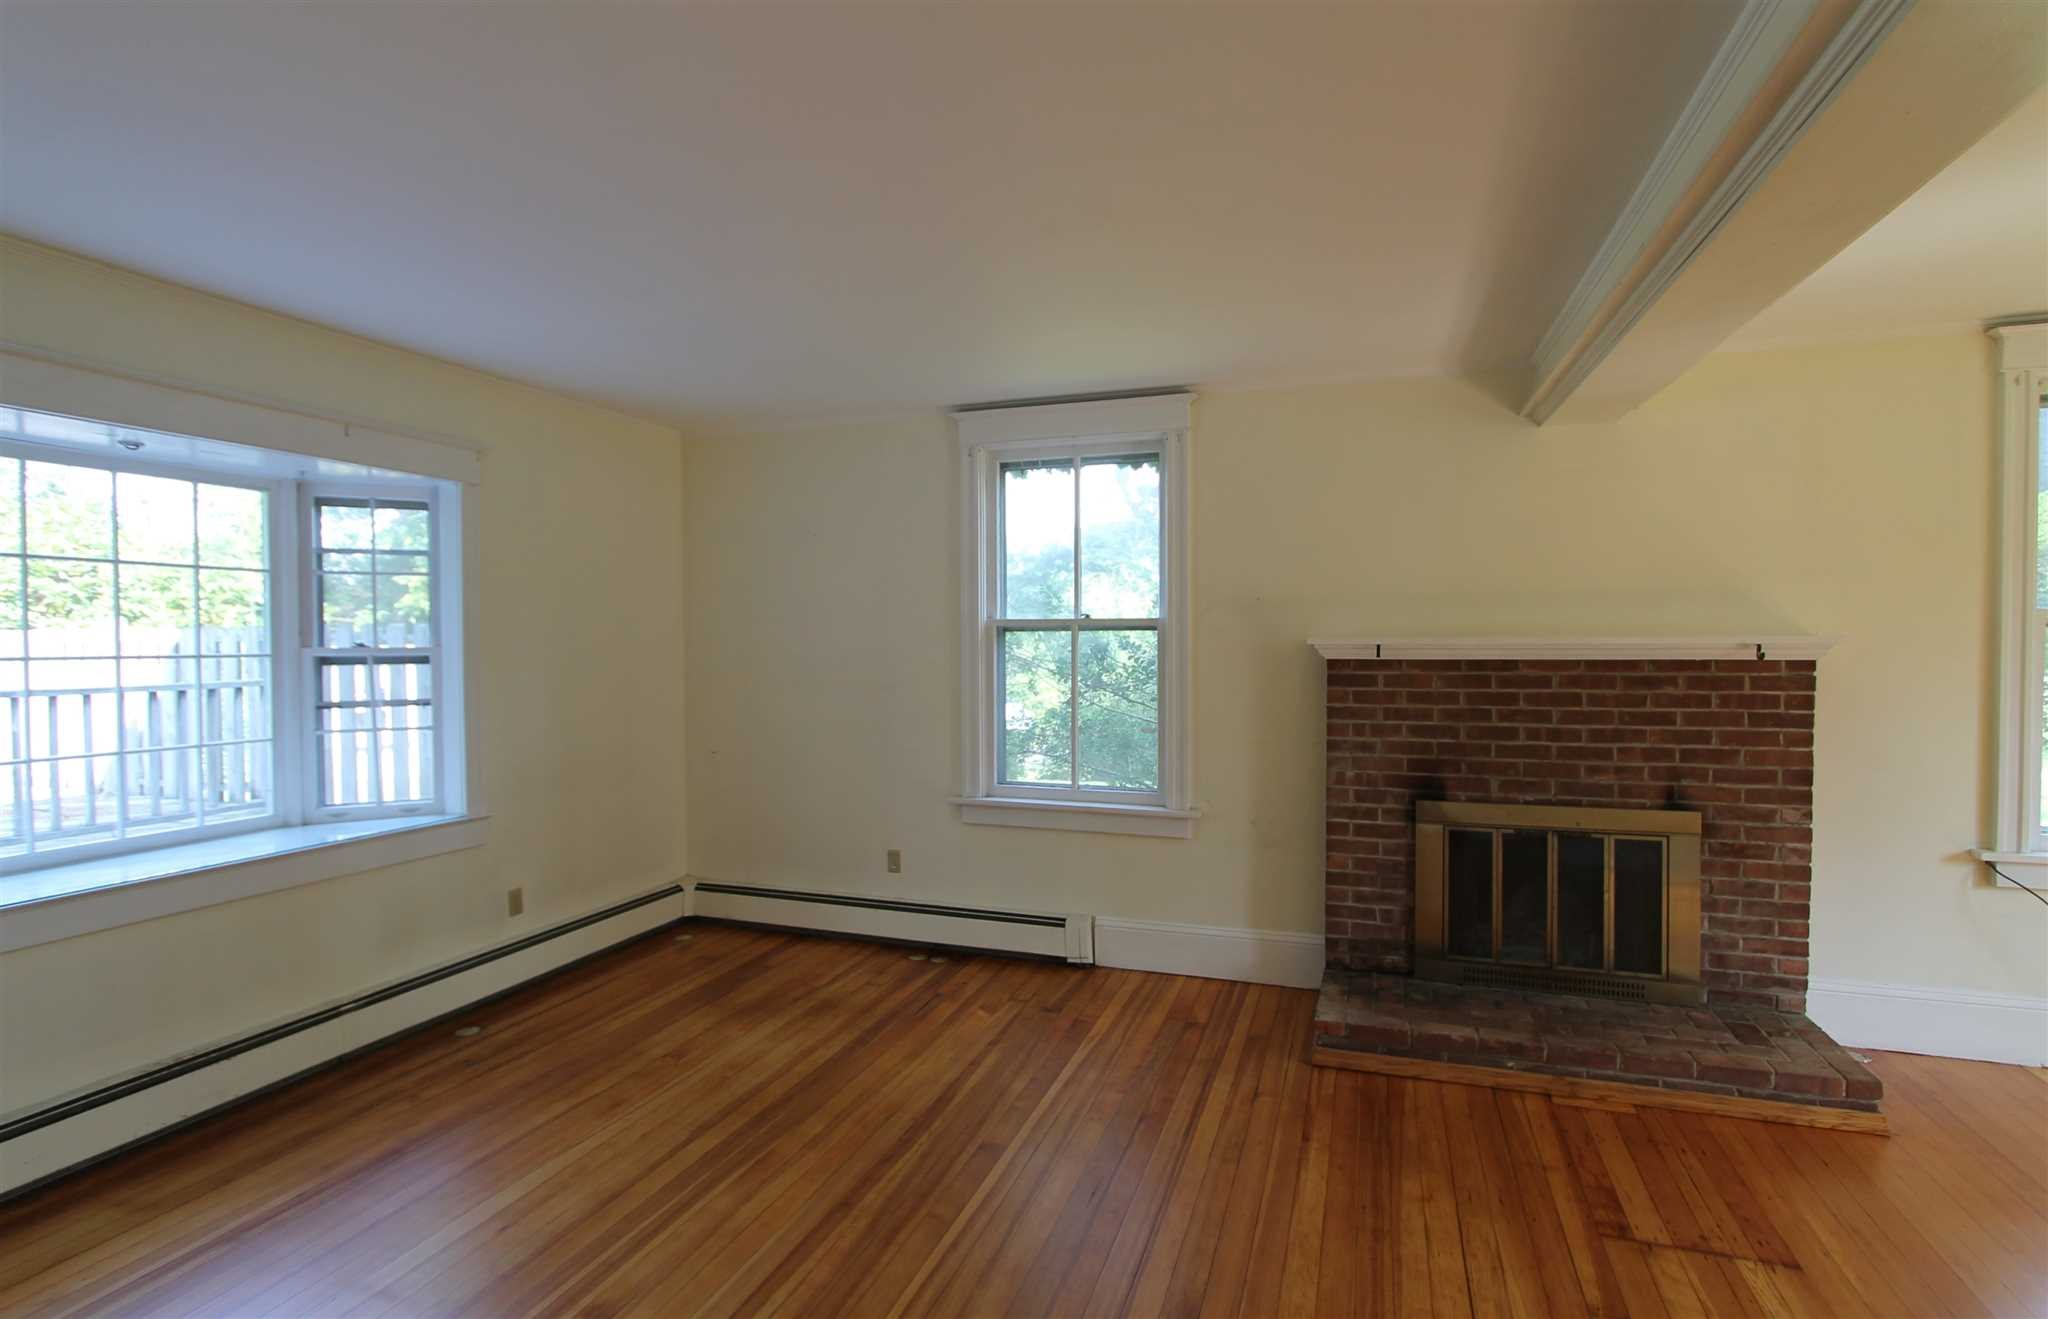 Additional photo for property listing at 5861 ROUTE 9 5861 ROUTE 9 Rhinebeck, New York 12572 United States